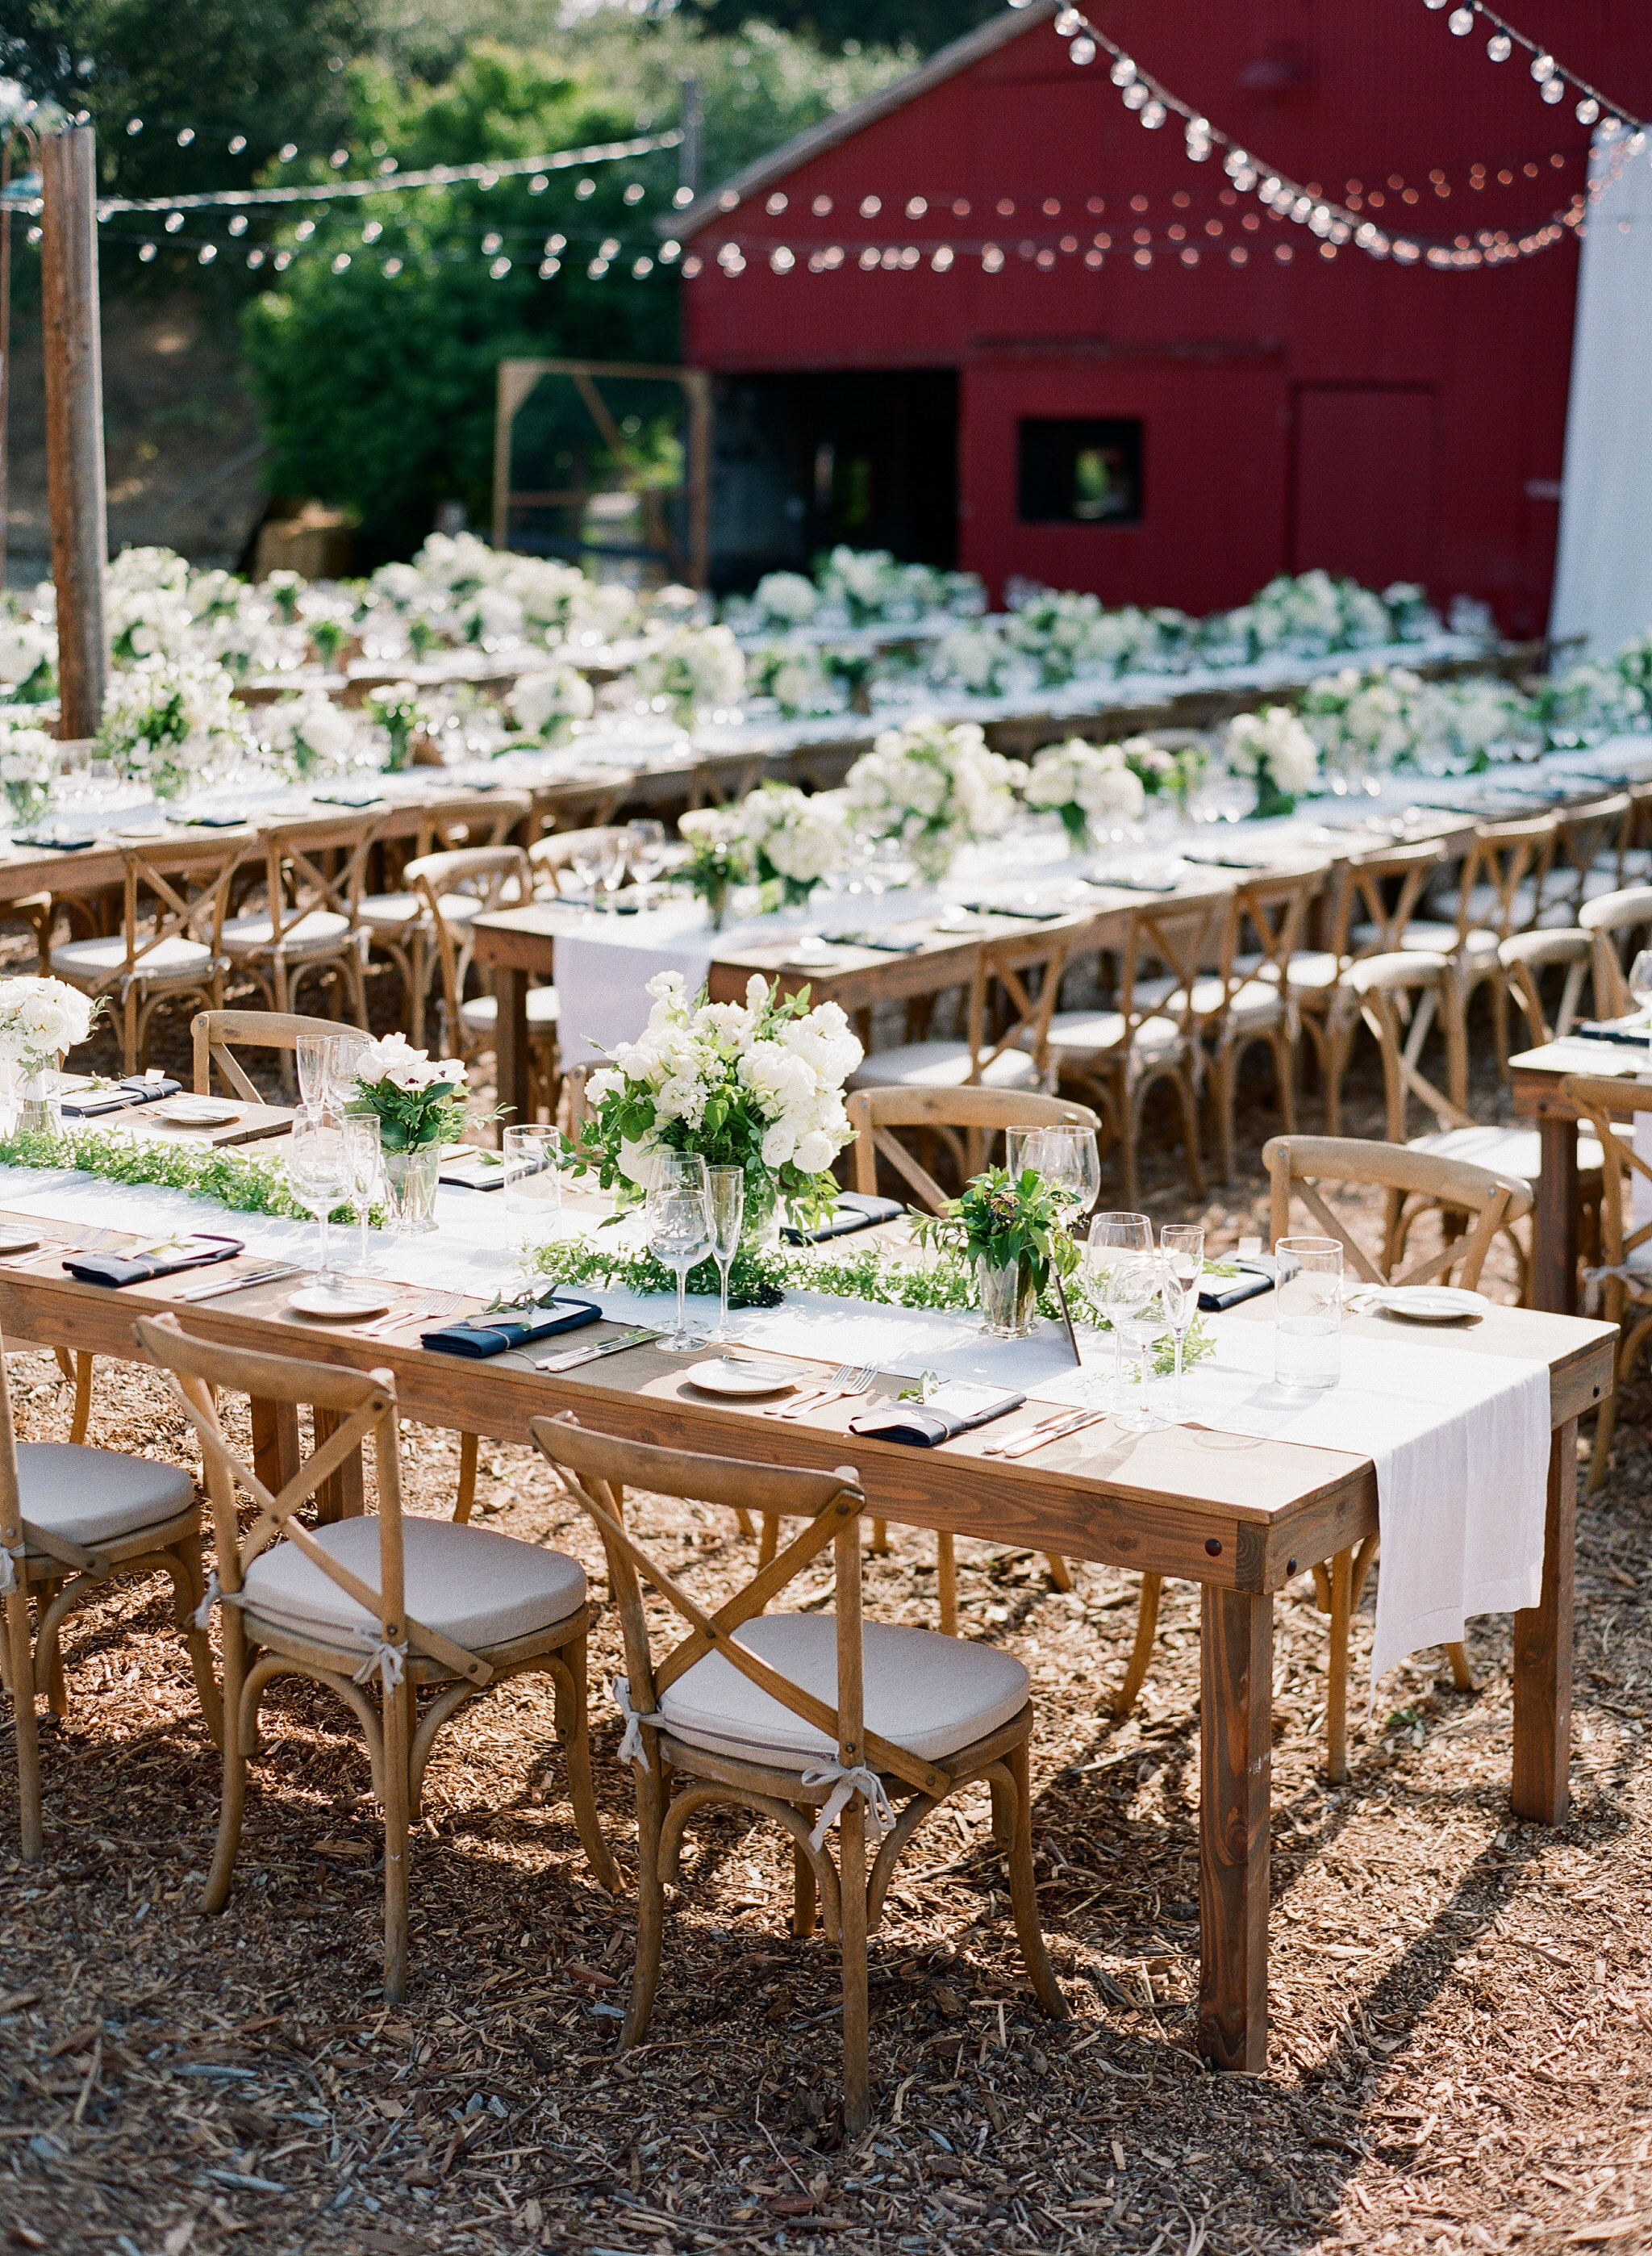 wedding catering in ojai, santa ynez & santa barbara